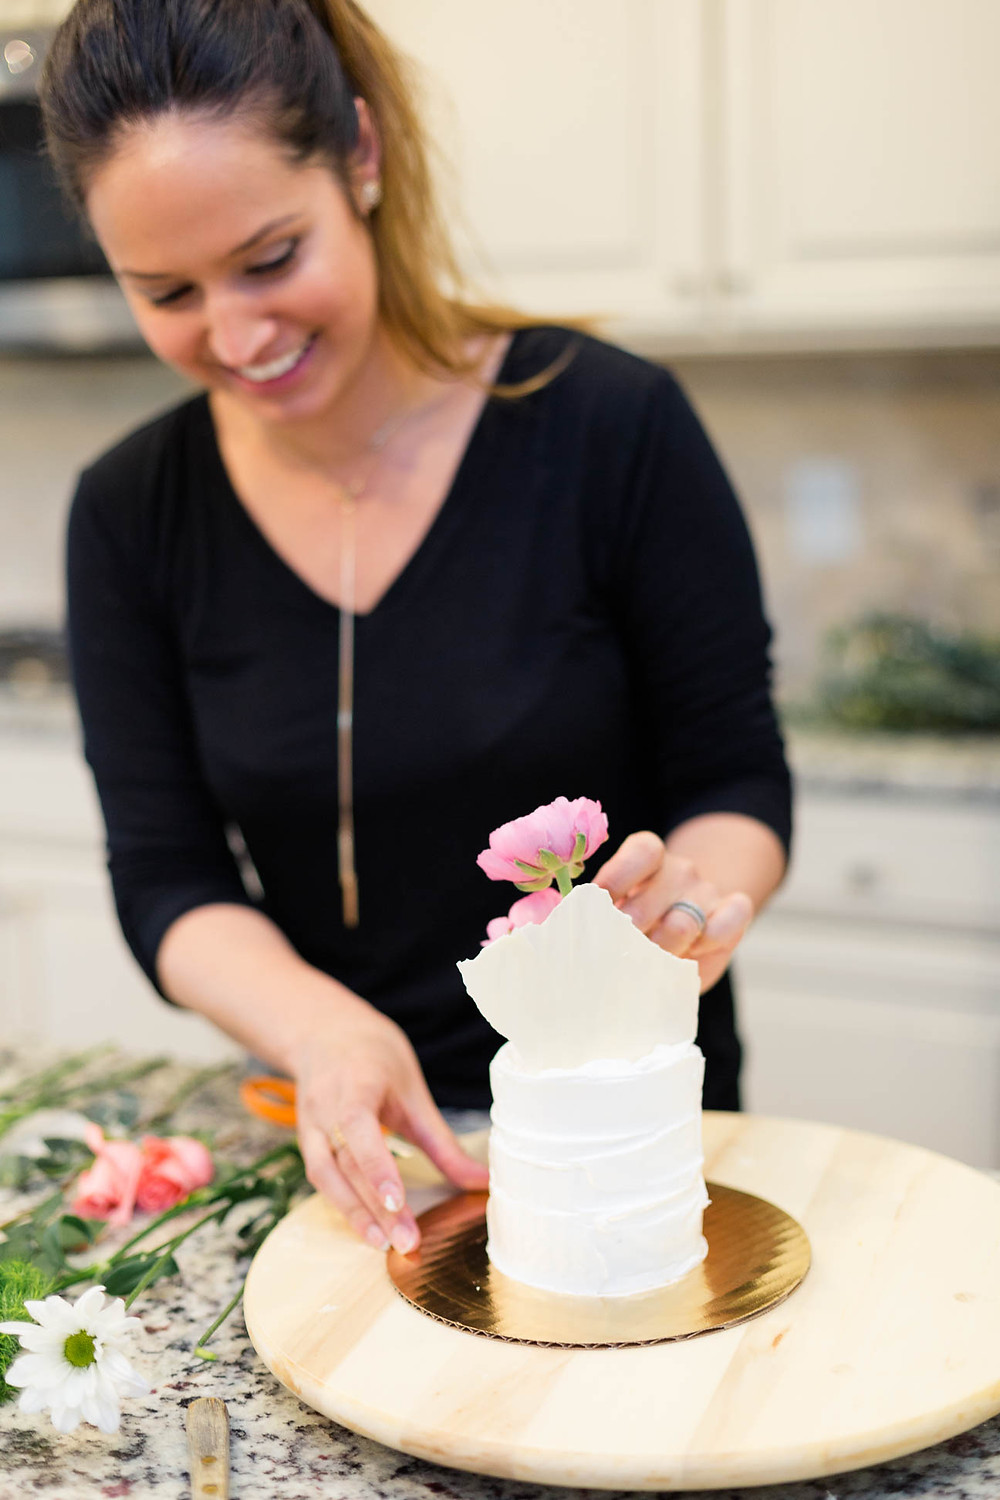 Michal decorates cakes with pink florals, ranunculus, floral inspired cakes, white chocolate sheet, s'mores cake